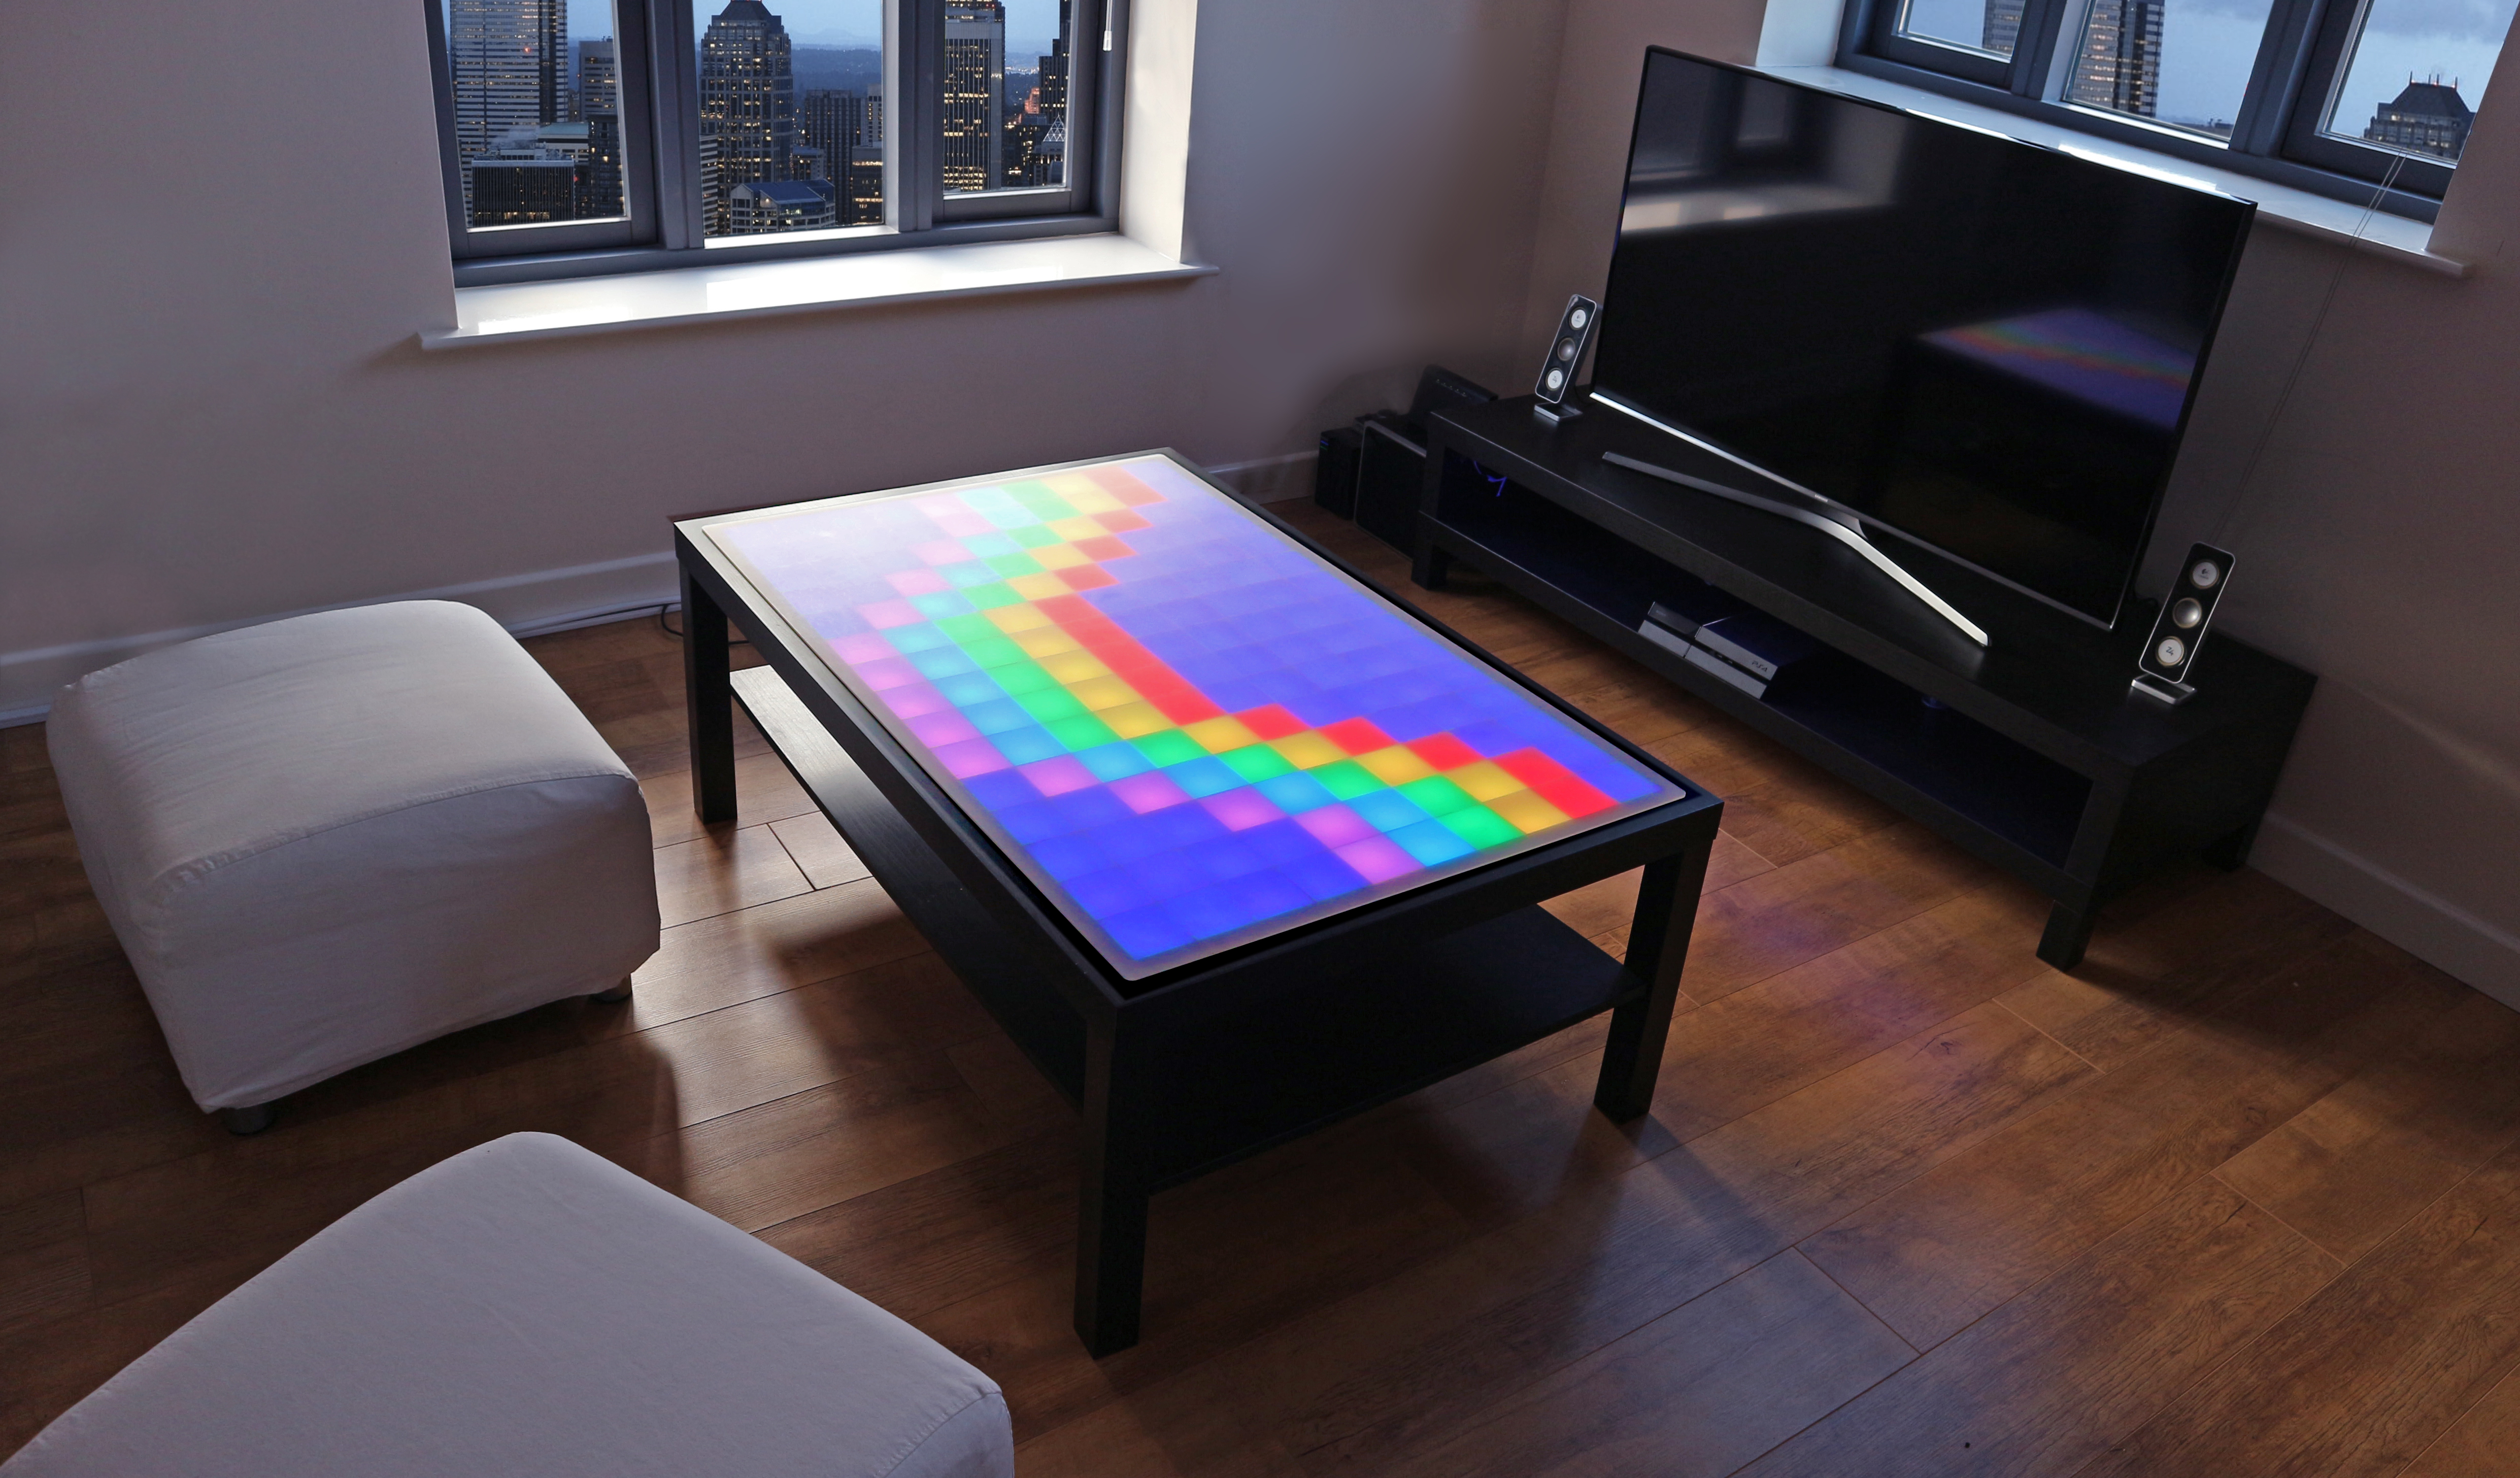 Picture of The DIY LED Table Kit